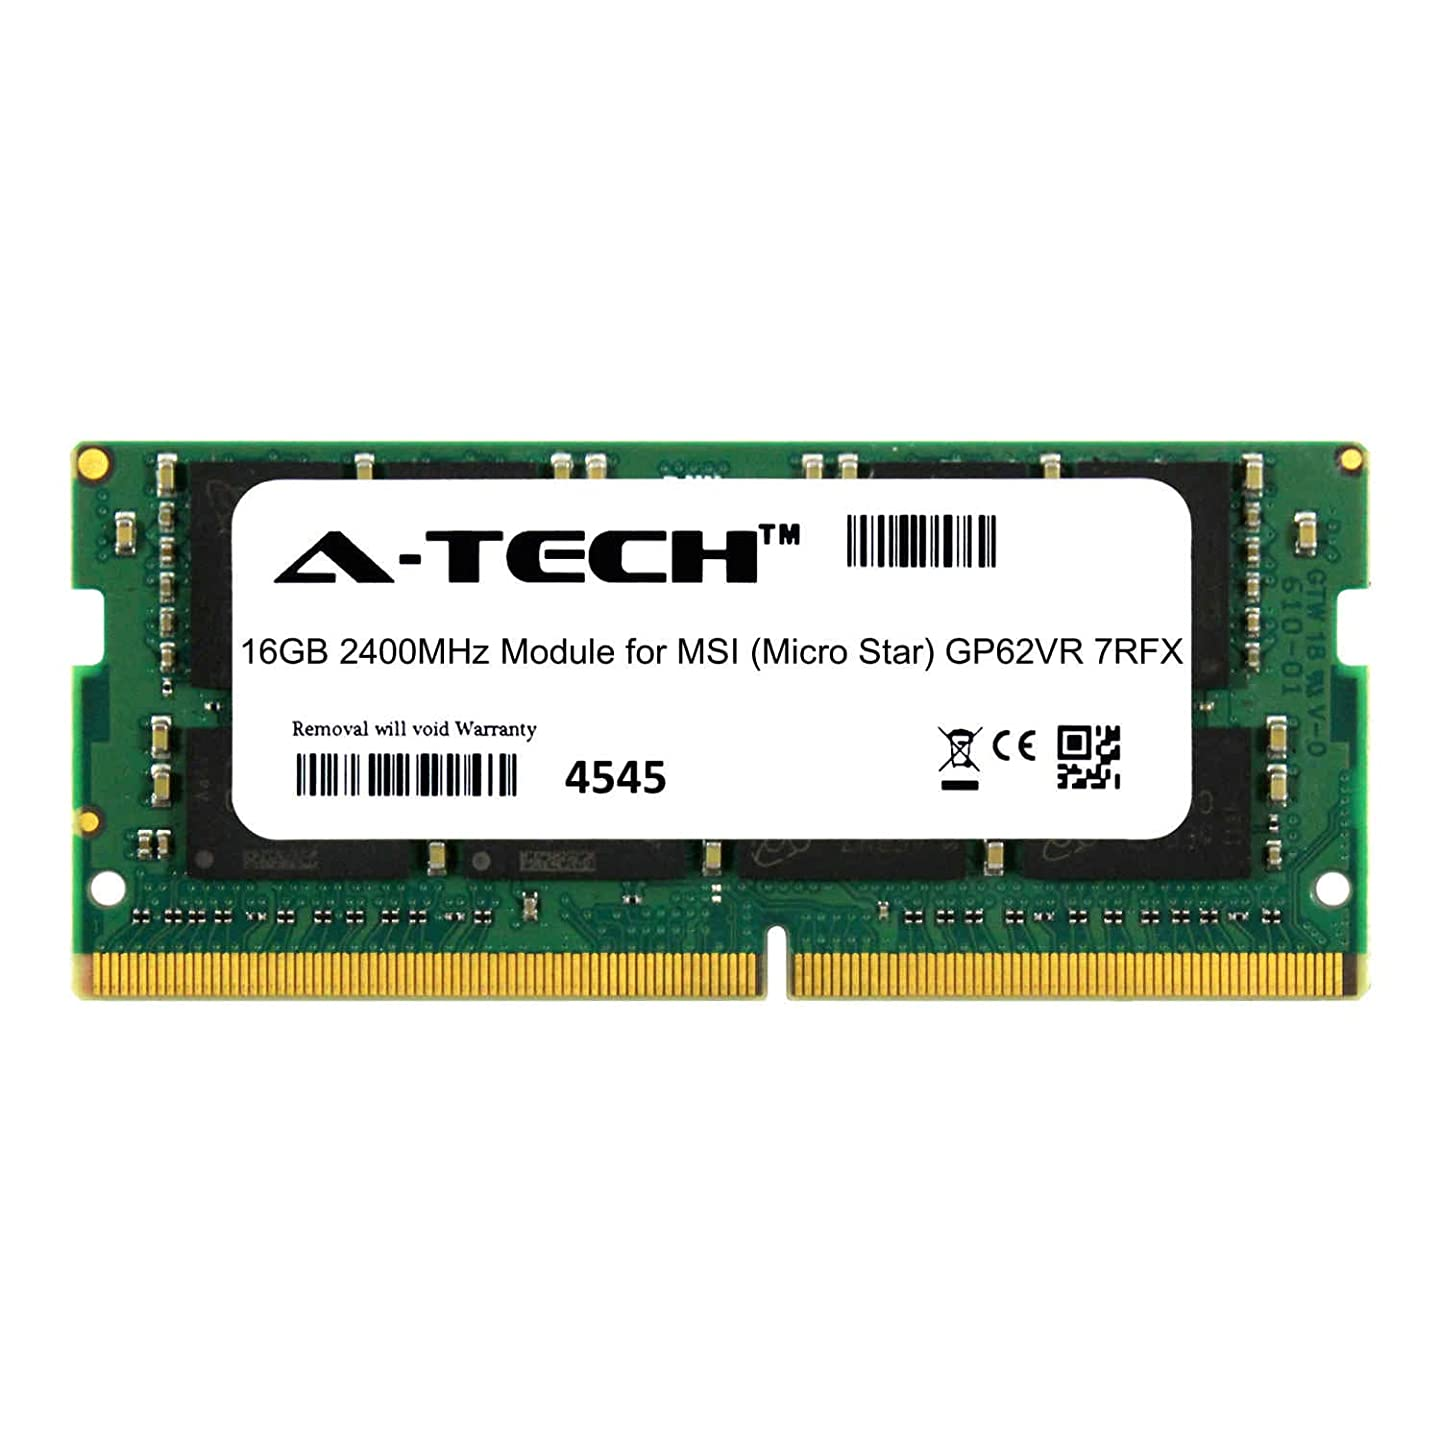 A-Tech 16GB Module for MSI (Micro Star) GP62VR 7RFX Laptop & Notebook Compatible DDR4 2400Mhz Memory Ram (ATMS368095A25831X1)